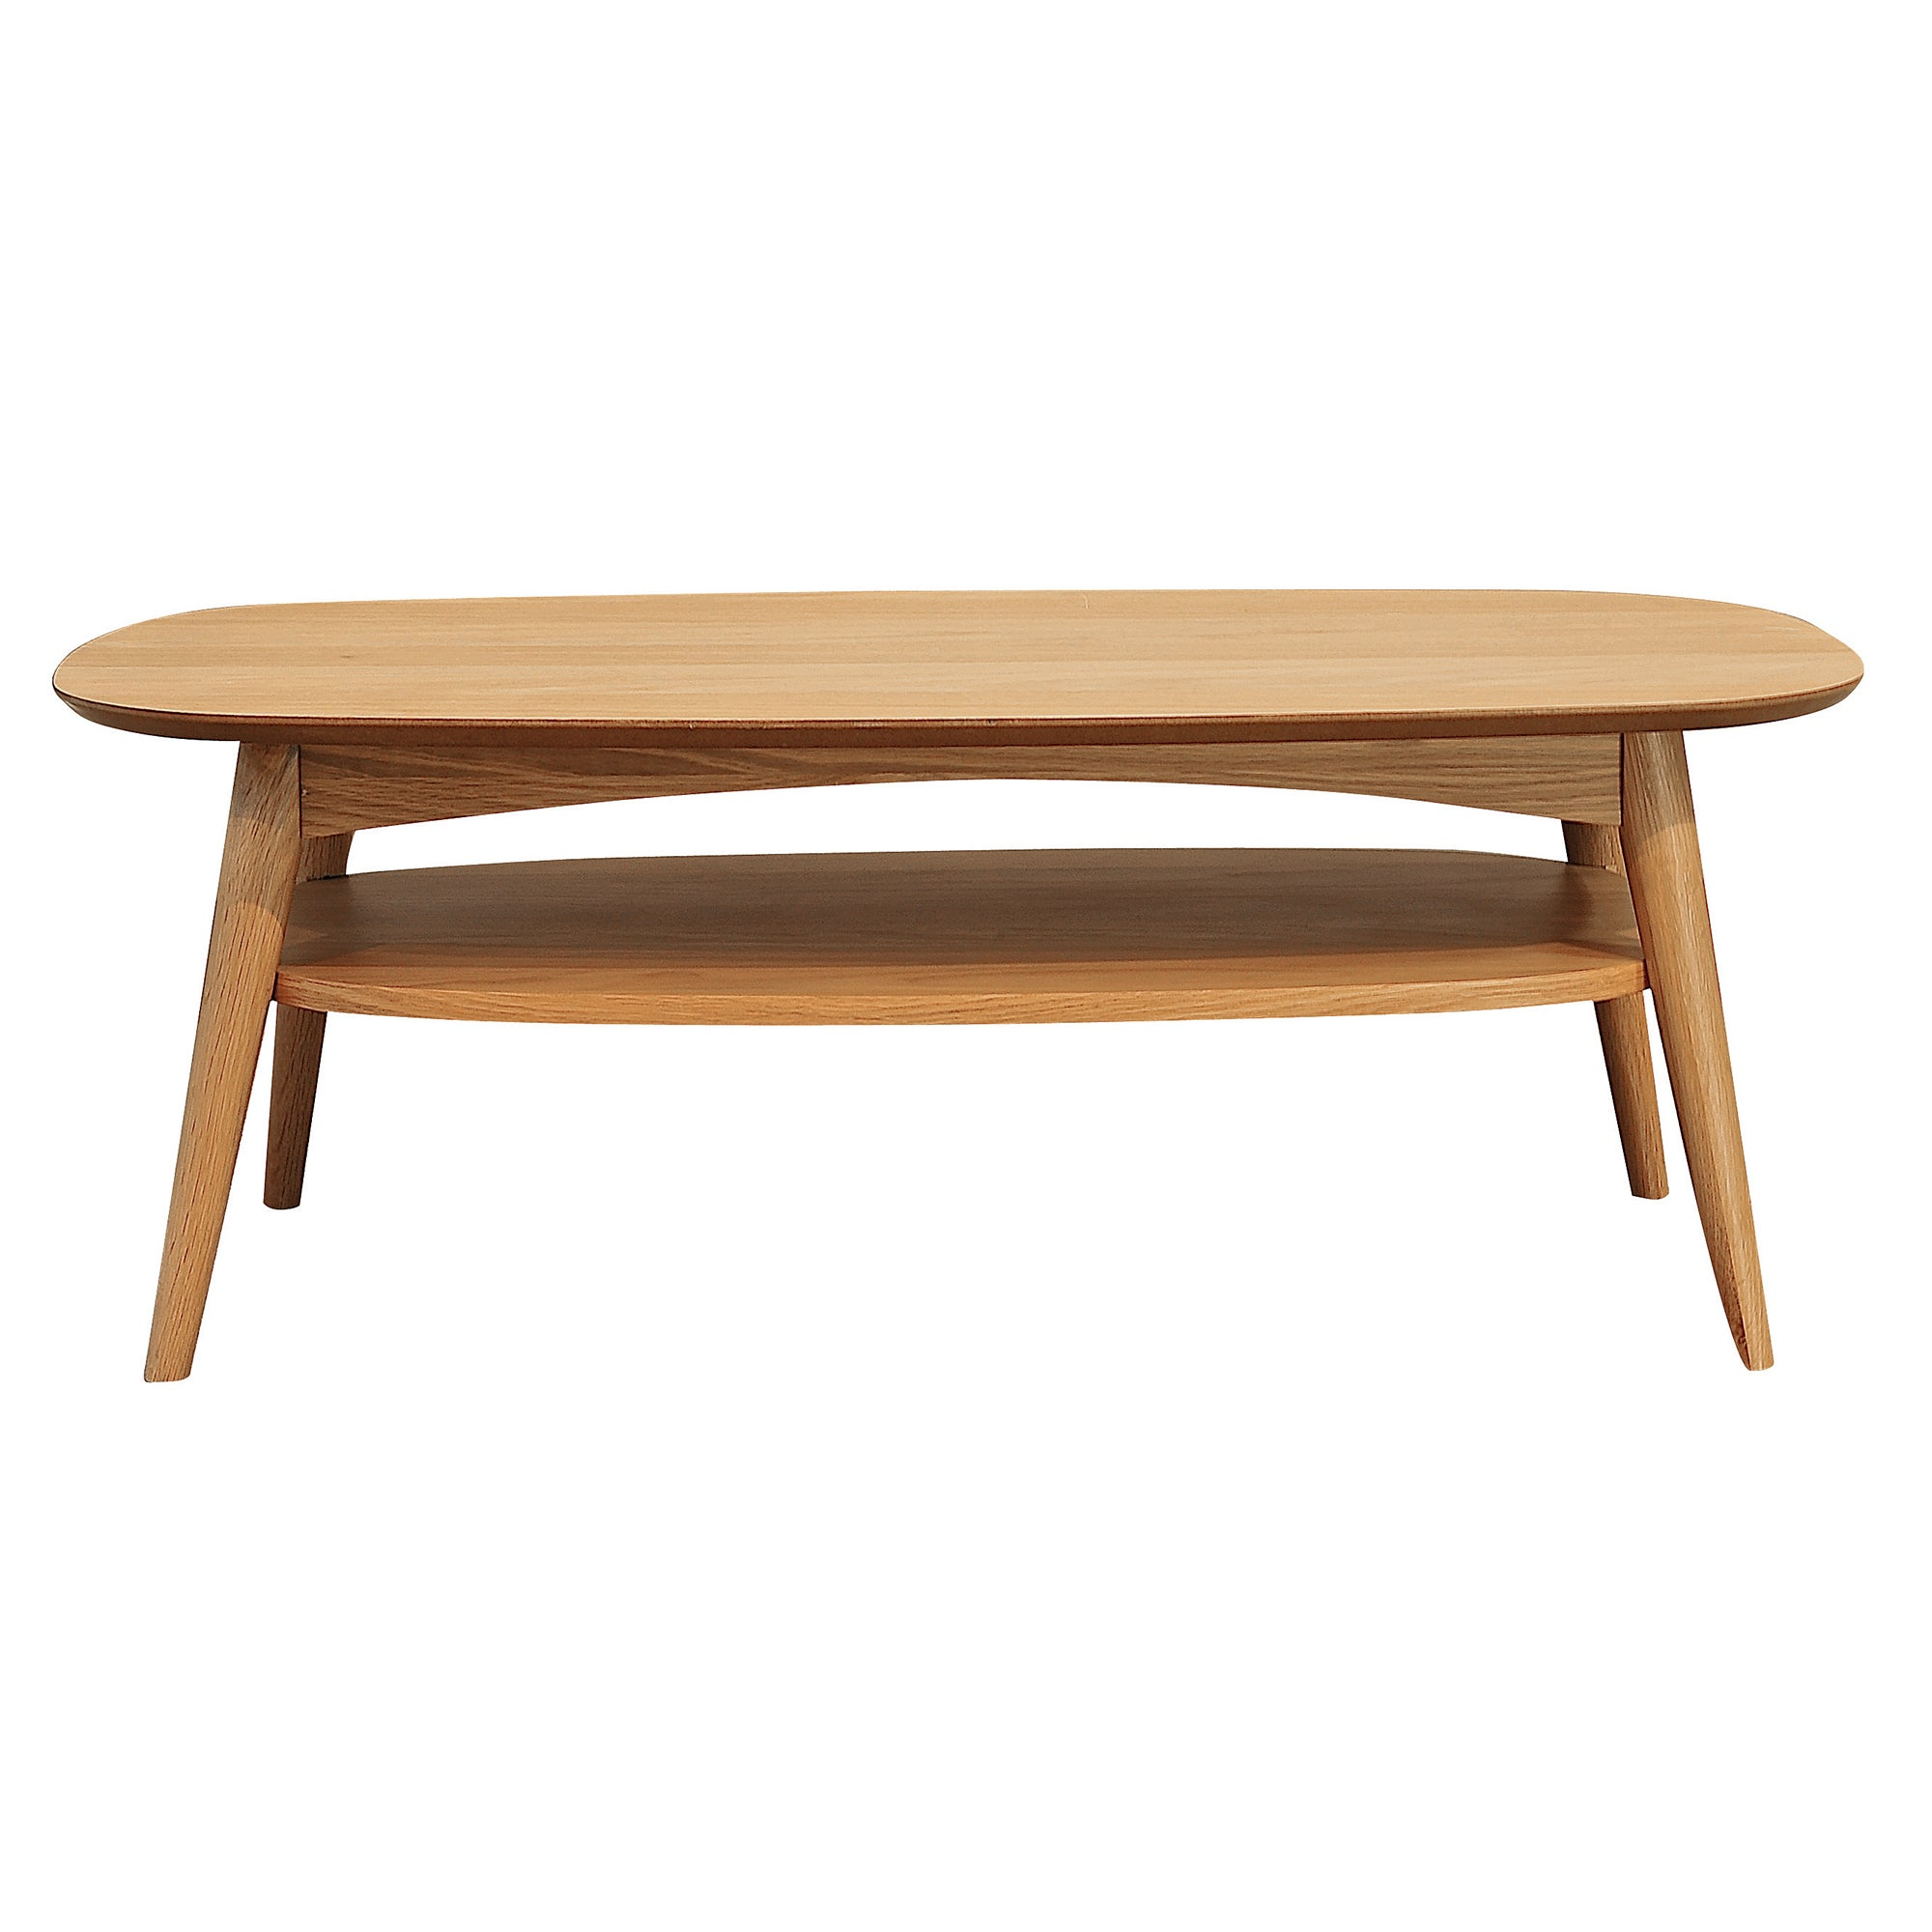 Light Wood Coffee Table Shop For Cheap Tables And Save Online